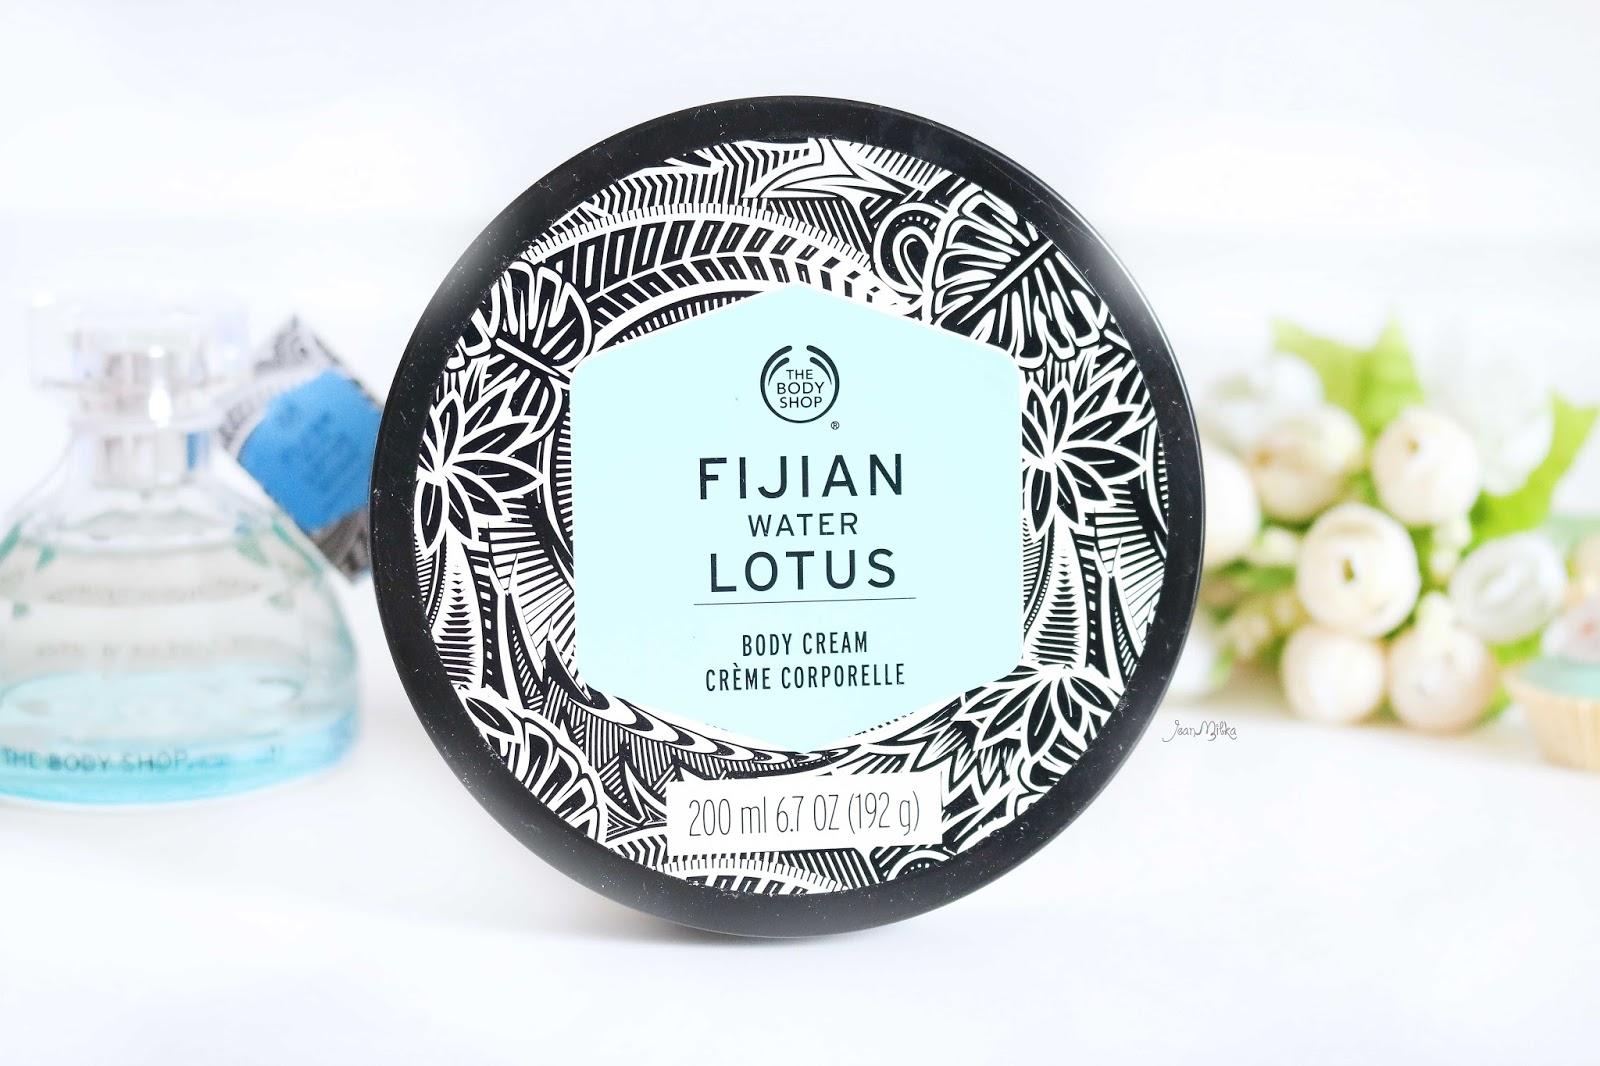 the body shop, body shop, review, beauty, skincare, fijian water lotus, the body shop voyage collection, voyage collection, body cream